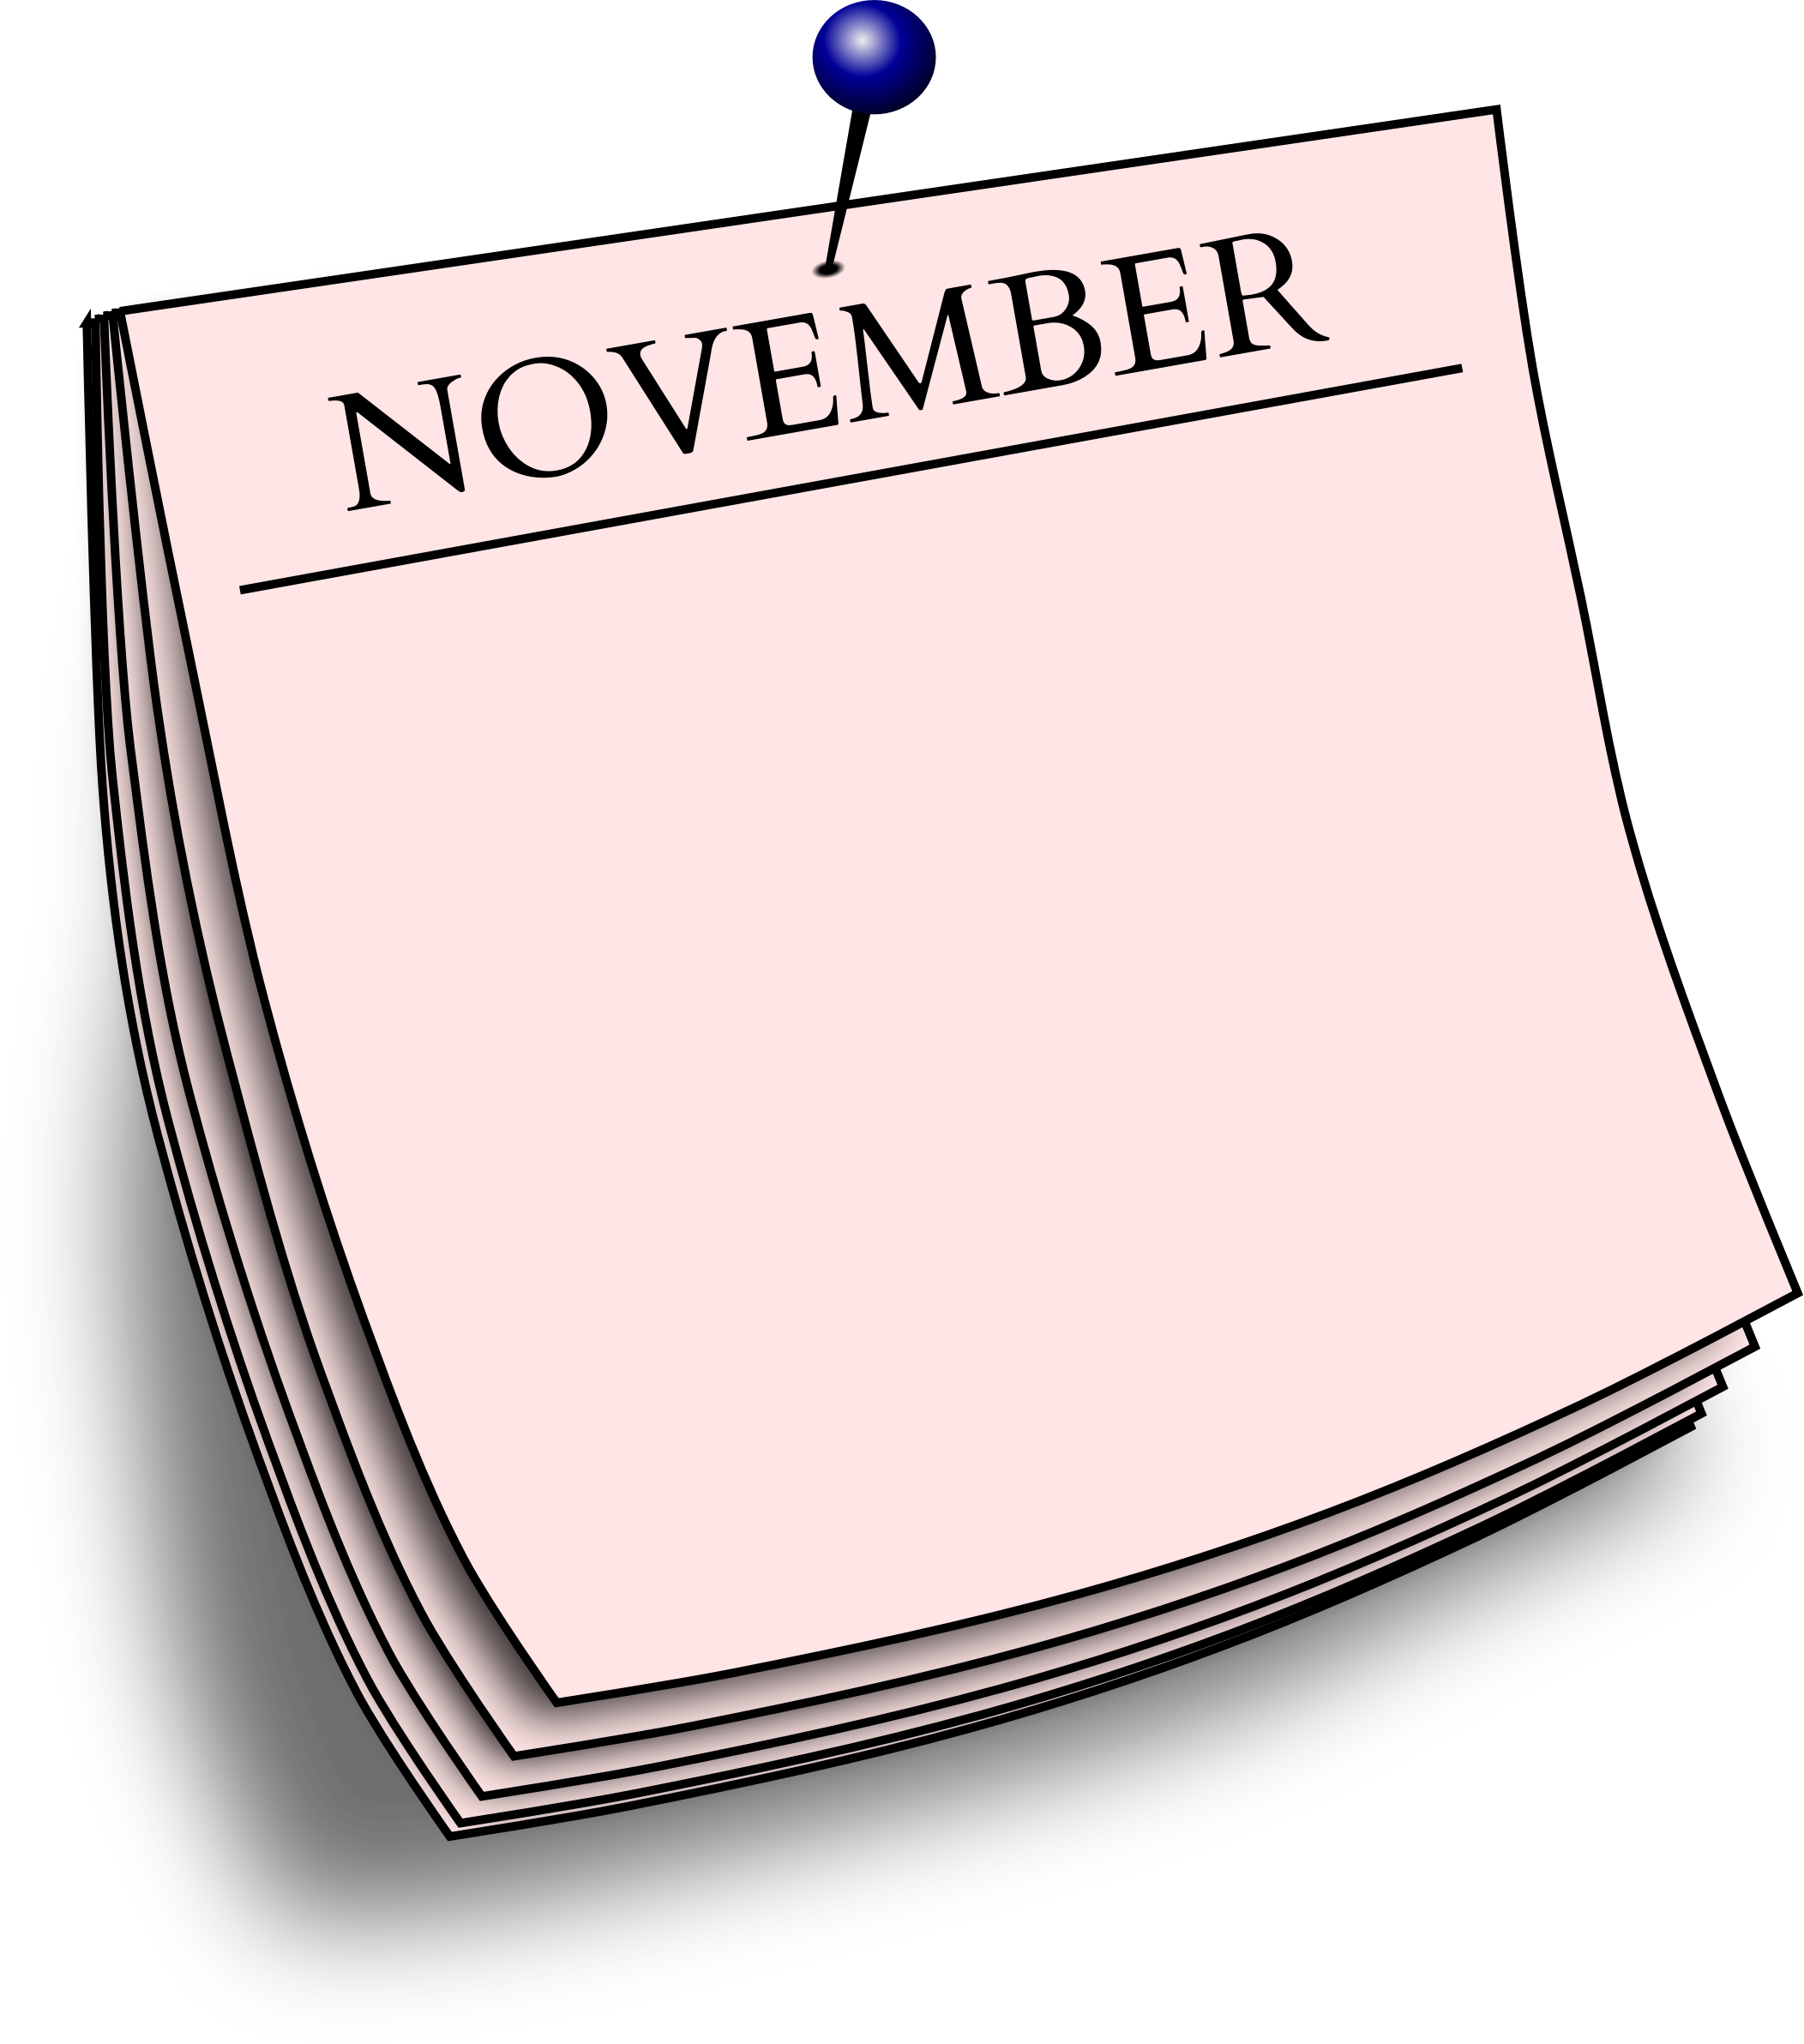 Monthly note - November by Firkin